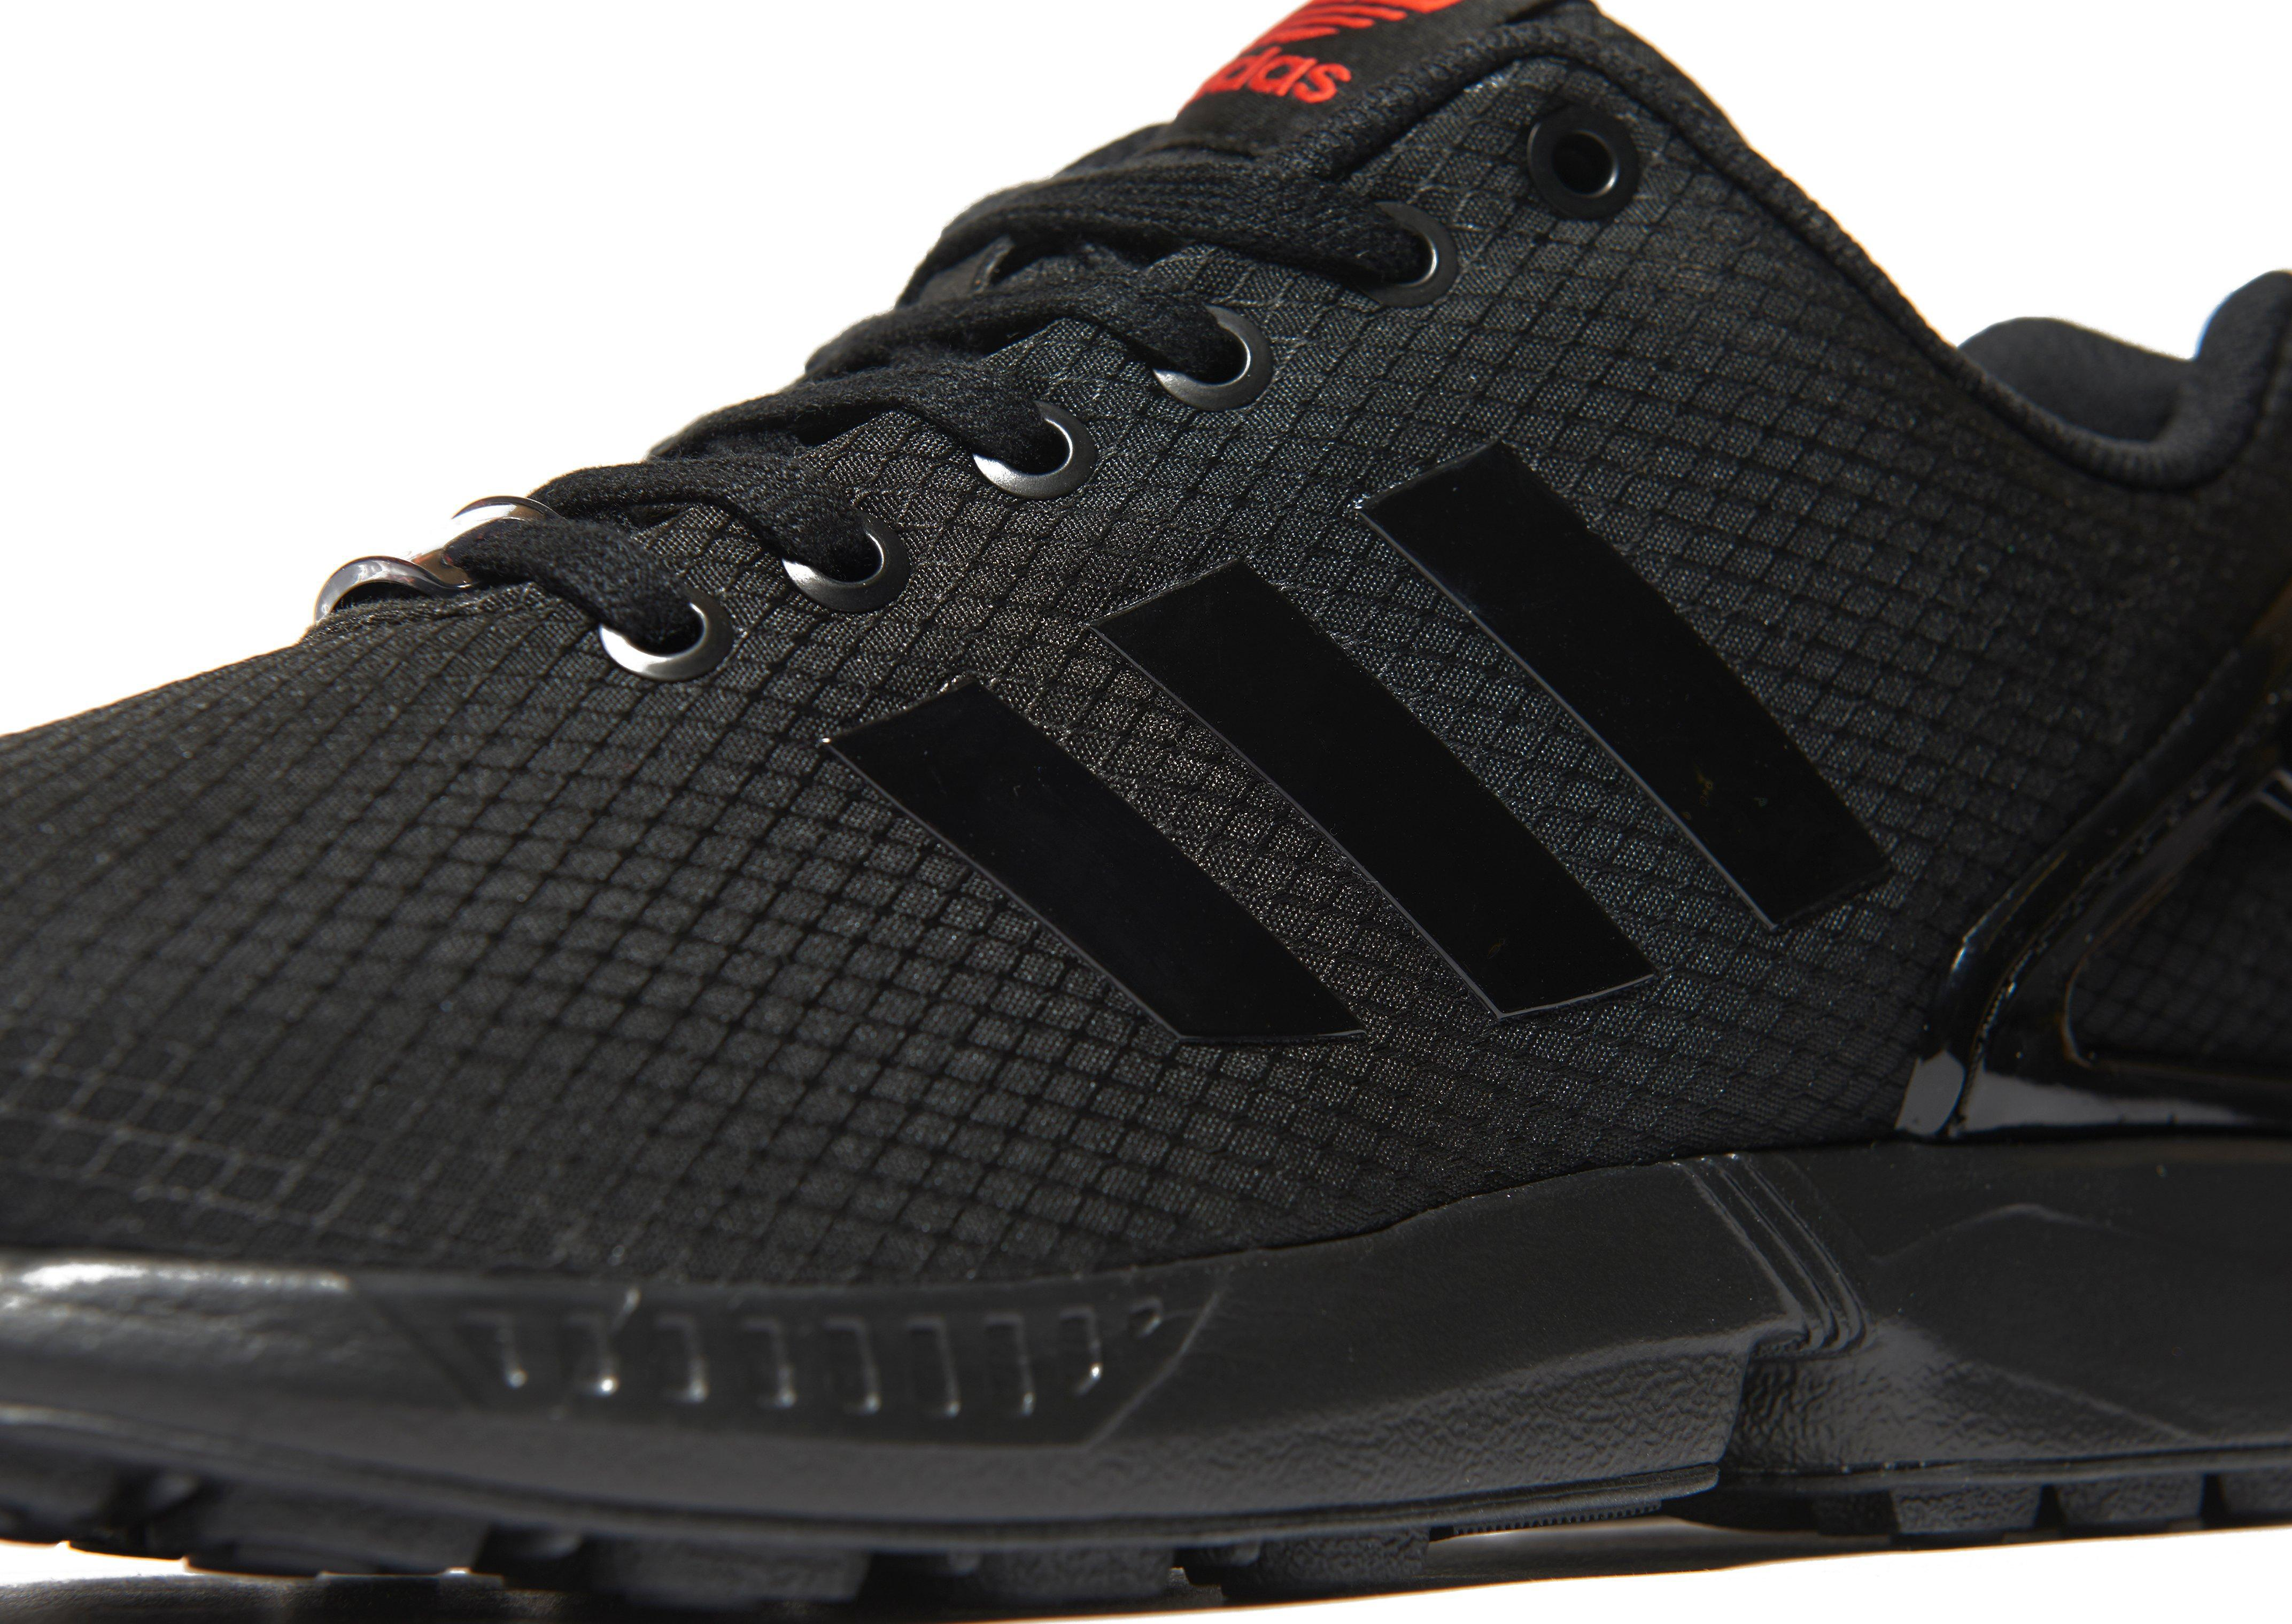 hot sale online a85a4 c2174 Adidas Originals Black Zx Flux Ripstop for men